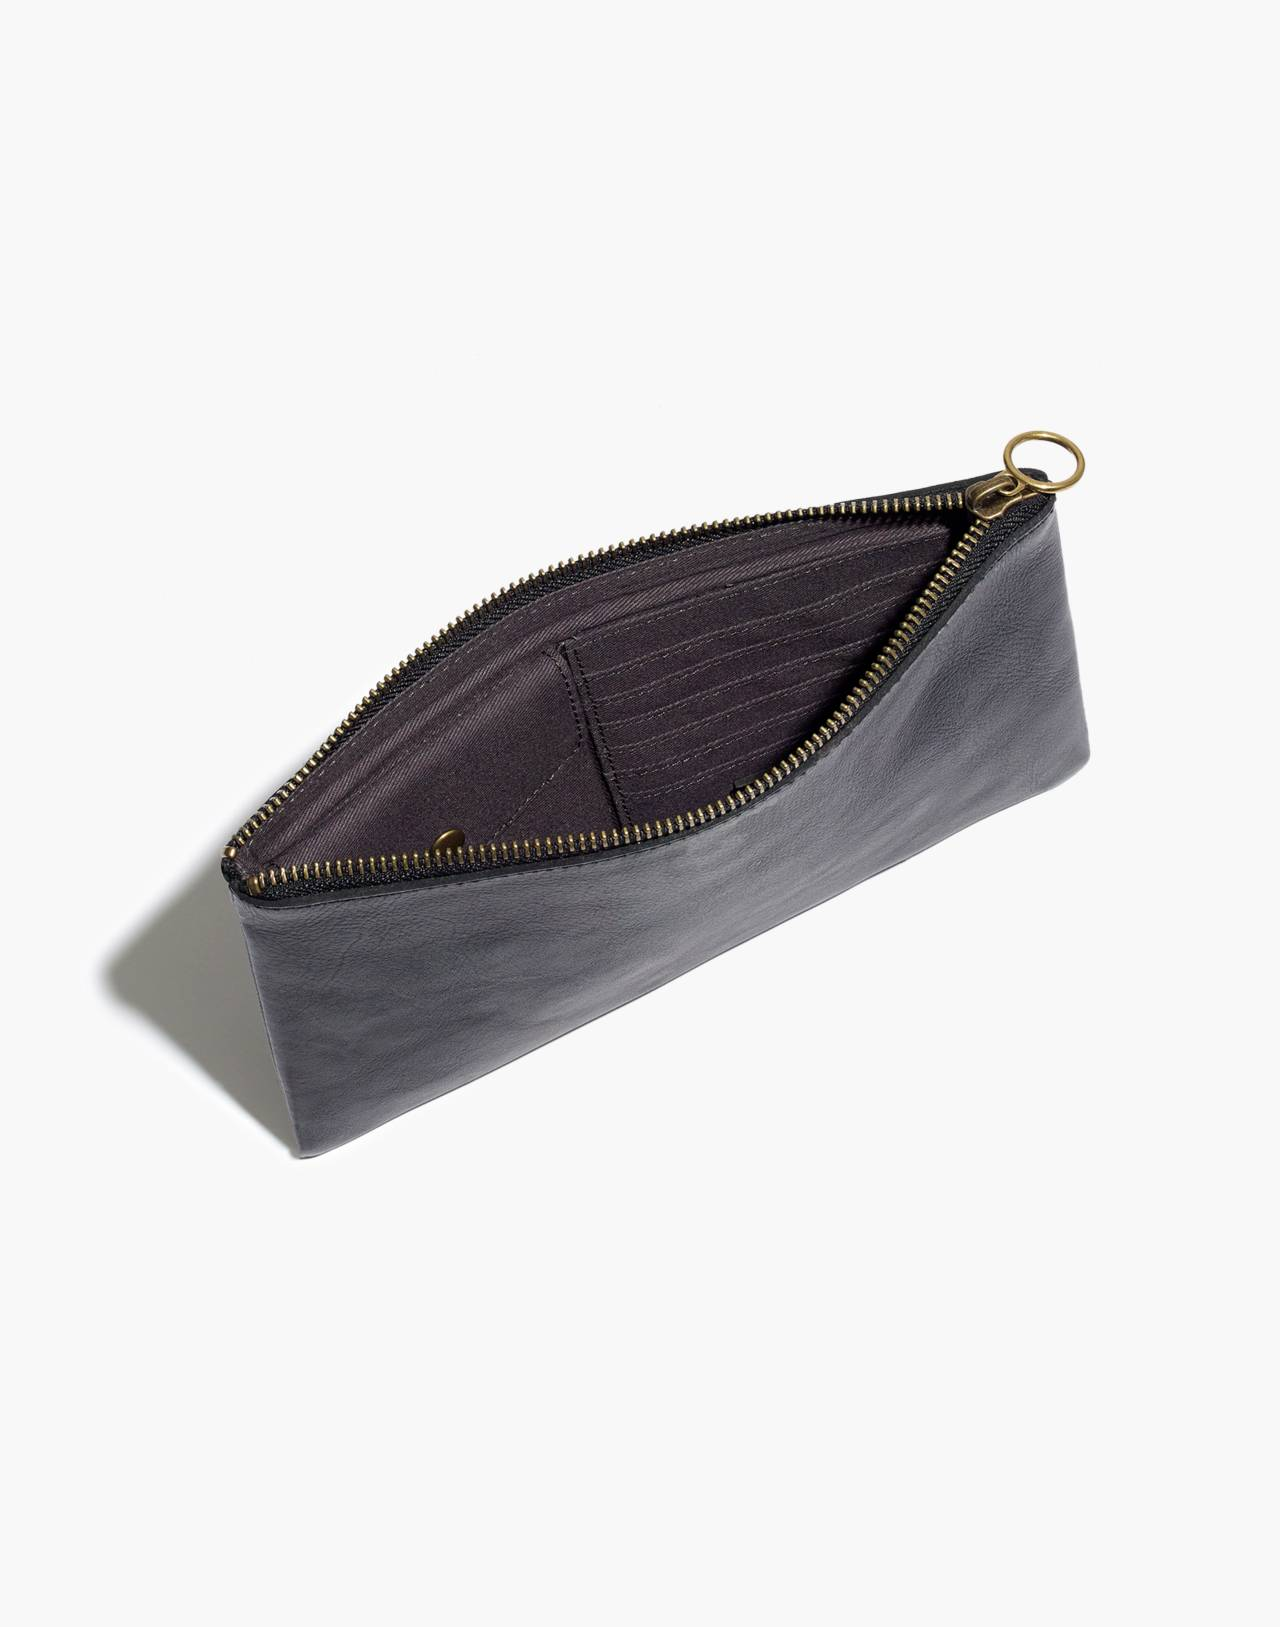 The Leather Pouch Clutch in true black image 3